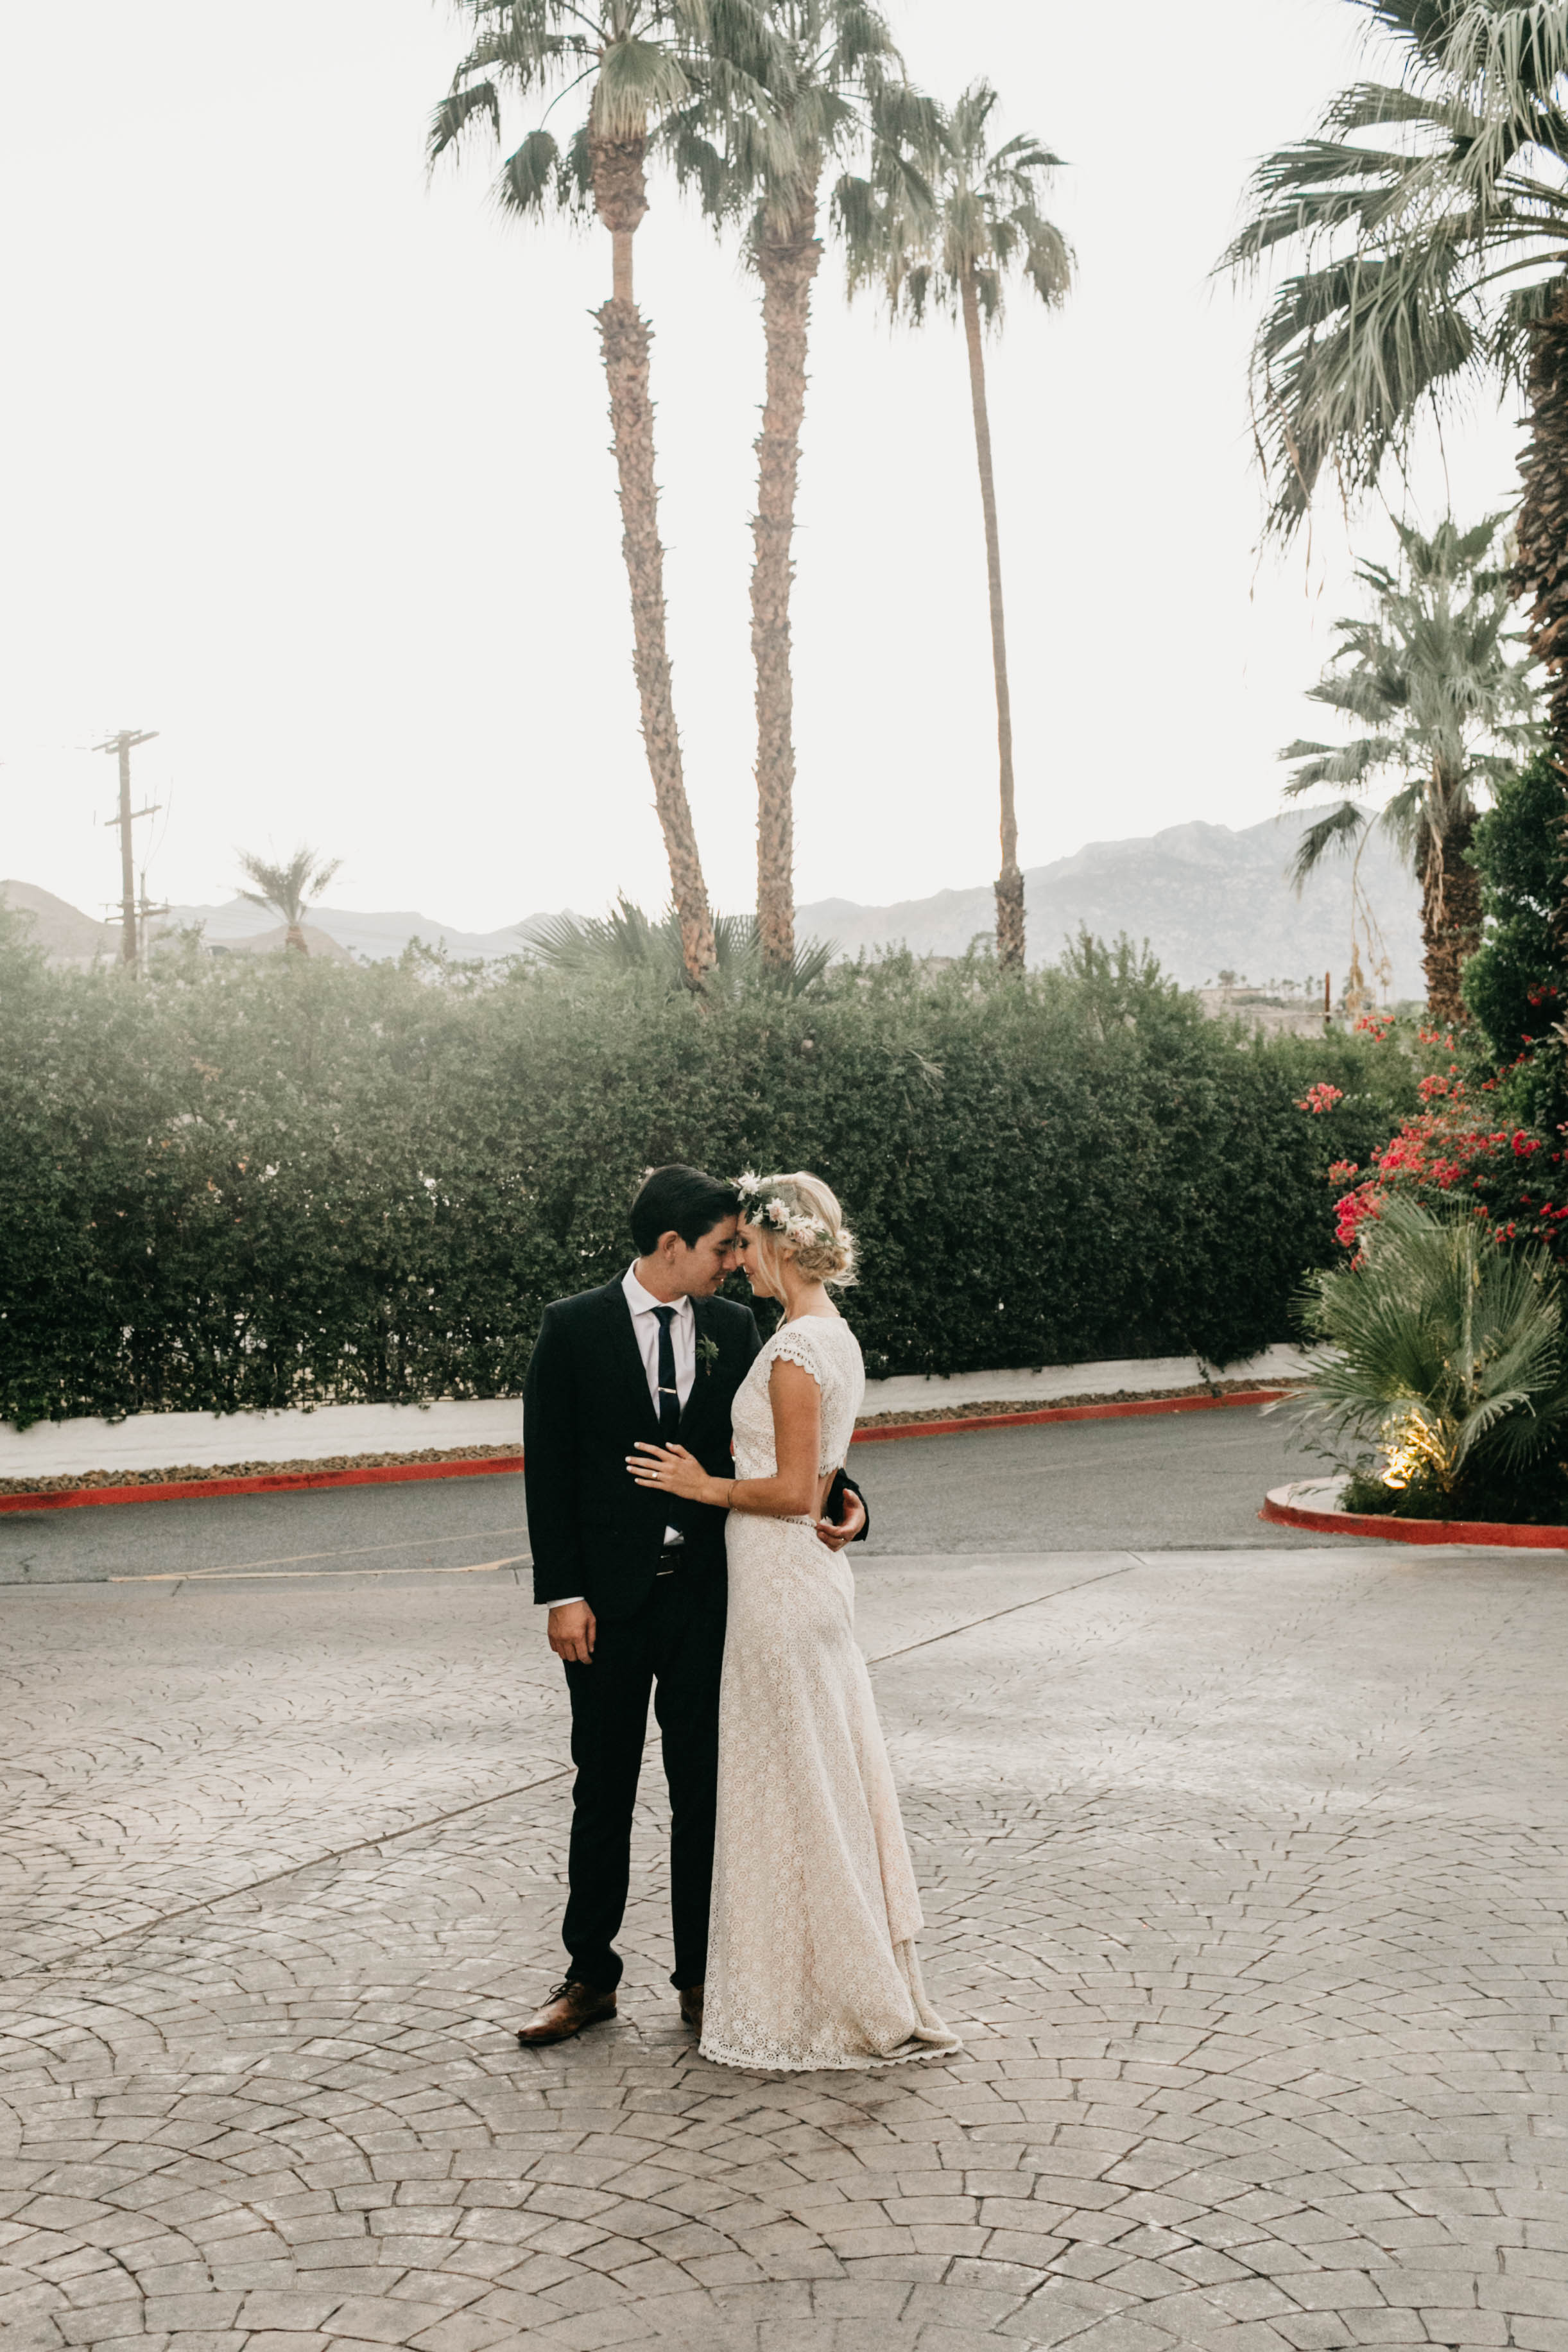 An Elegant and Classy Palm Springs Wedding at le Parker Meridian by a California Wedding Photographer Kadi Tobin